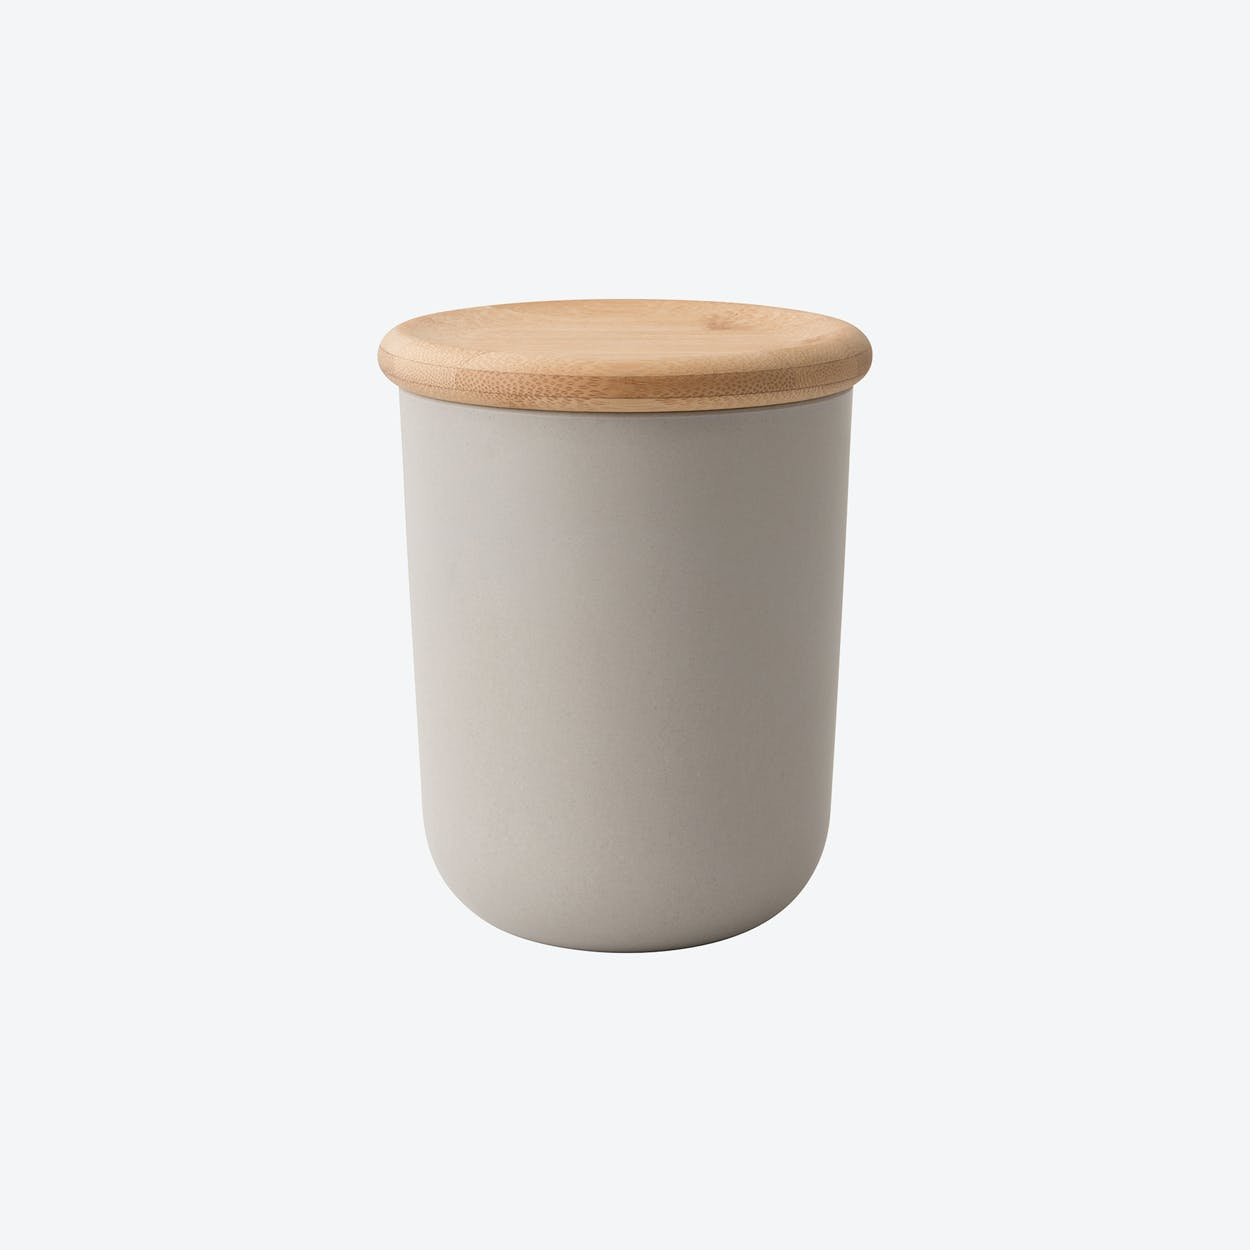 Canister w/ Bamboo Lid in Light Grey, Set of 4